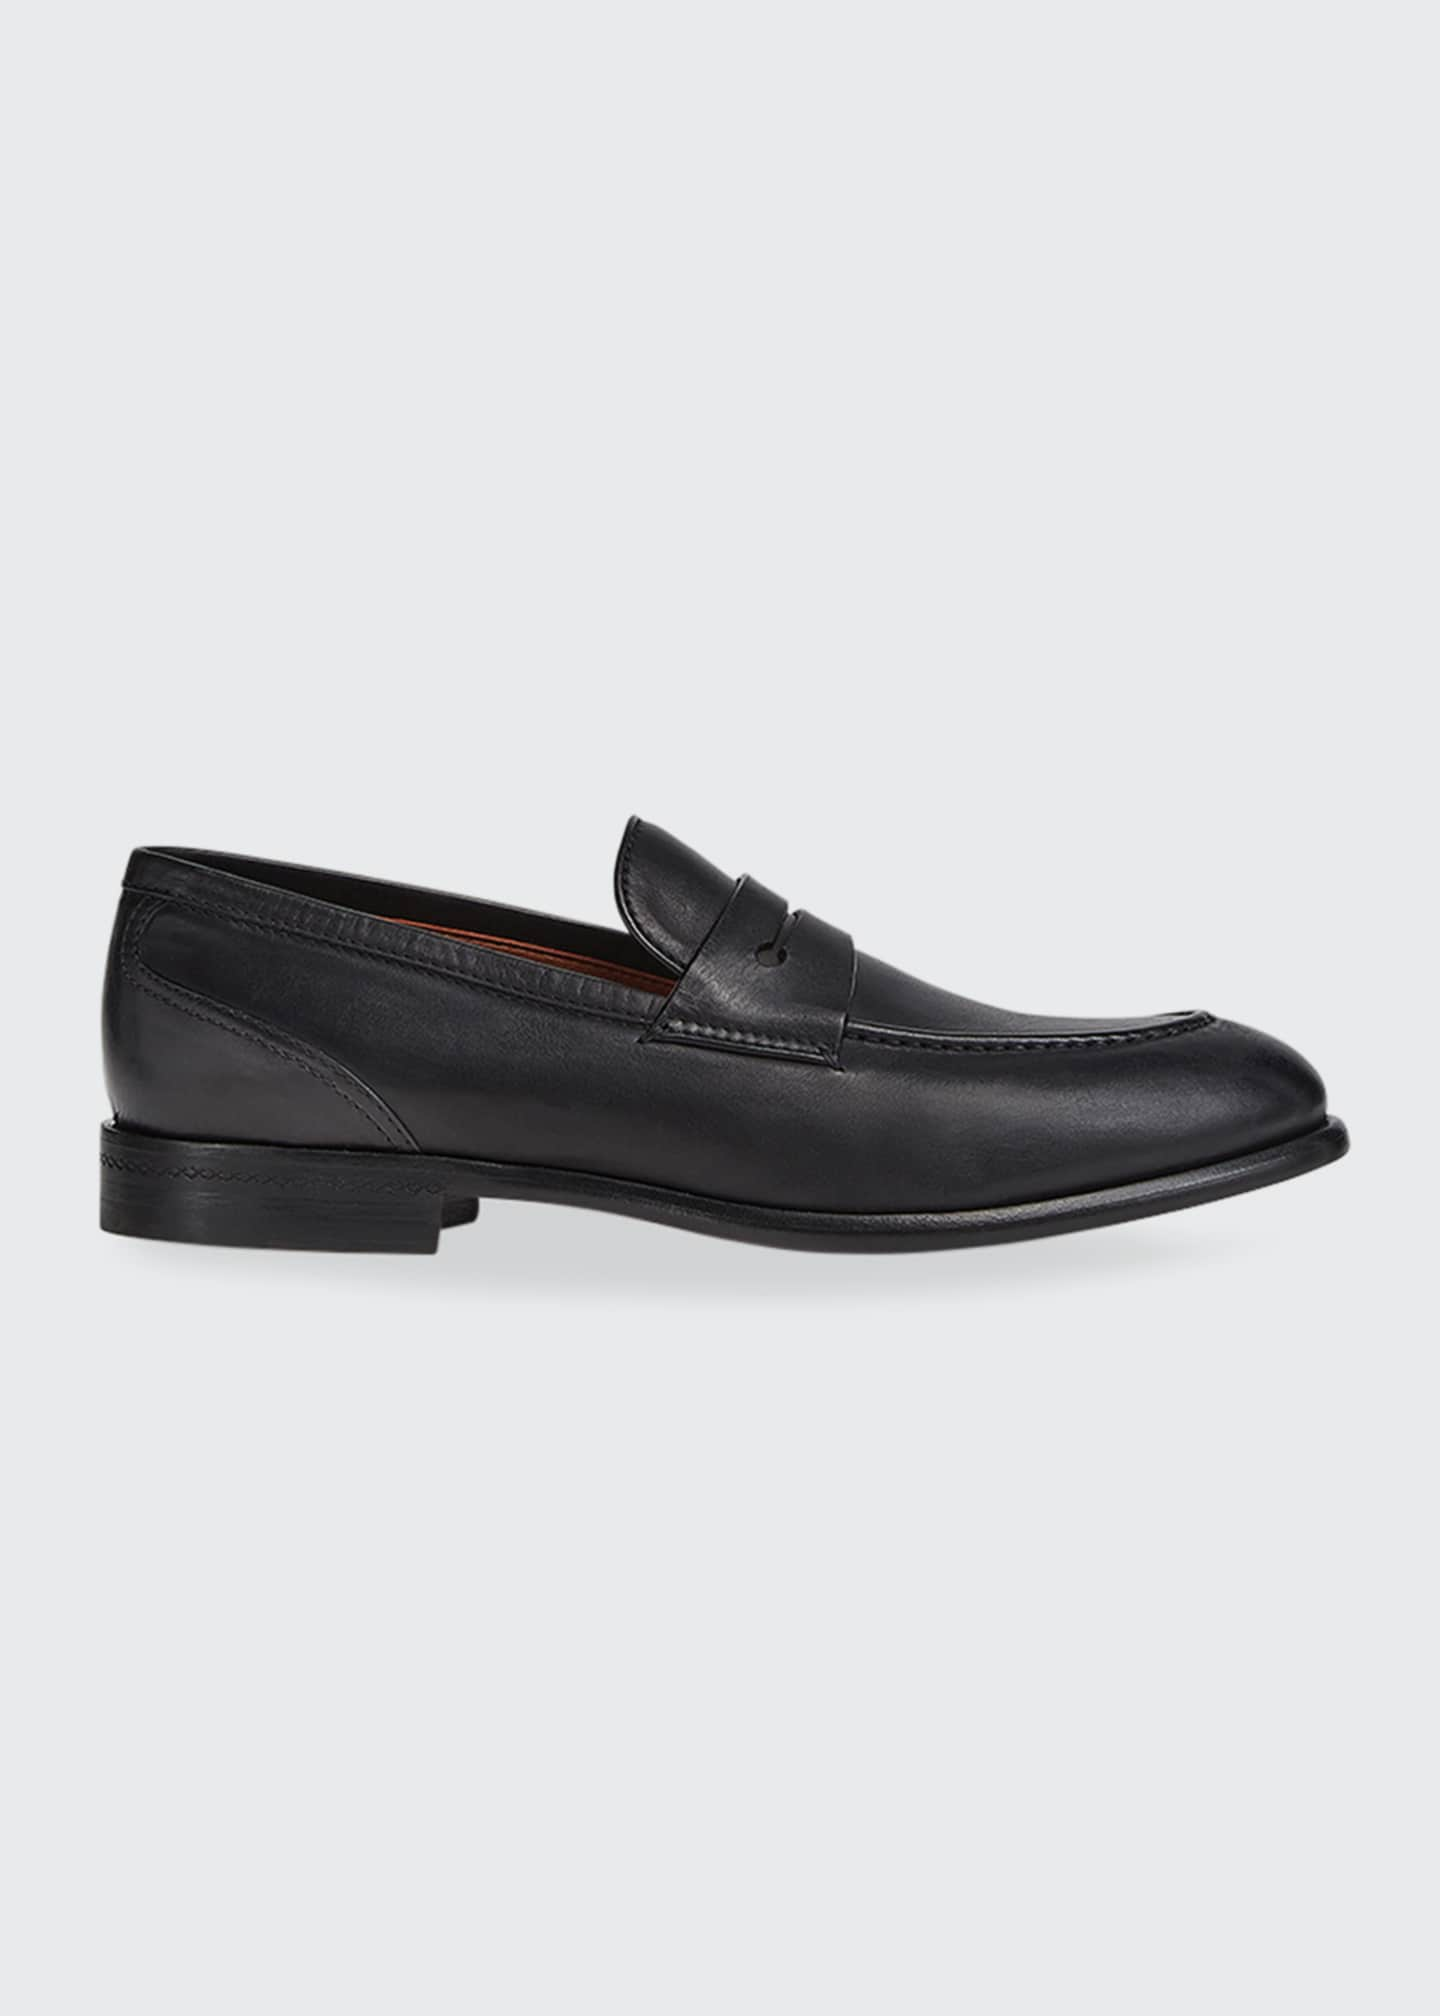 Image 1 of 3: Men's Marcello Leather Penny Loafers